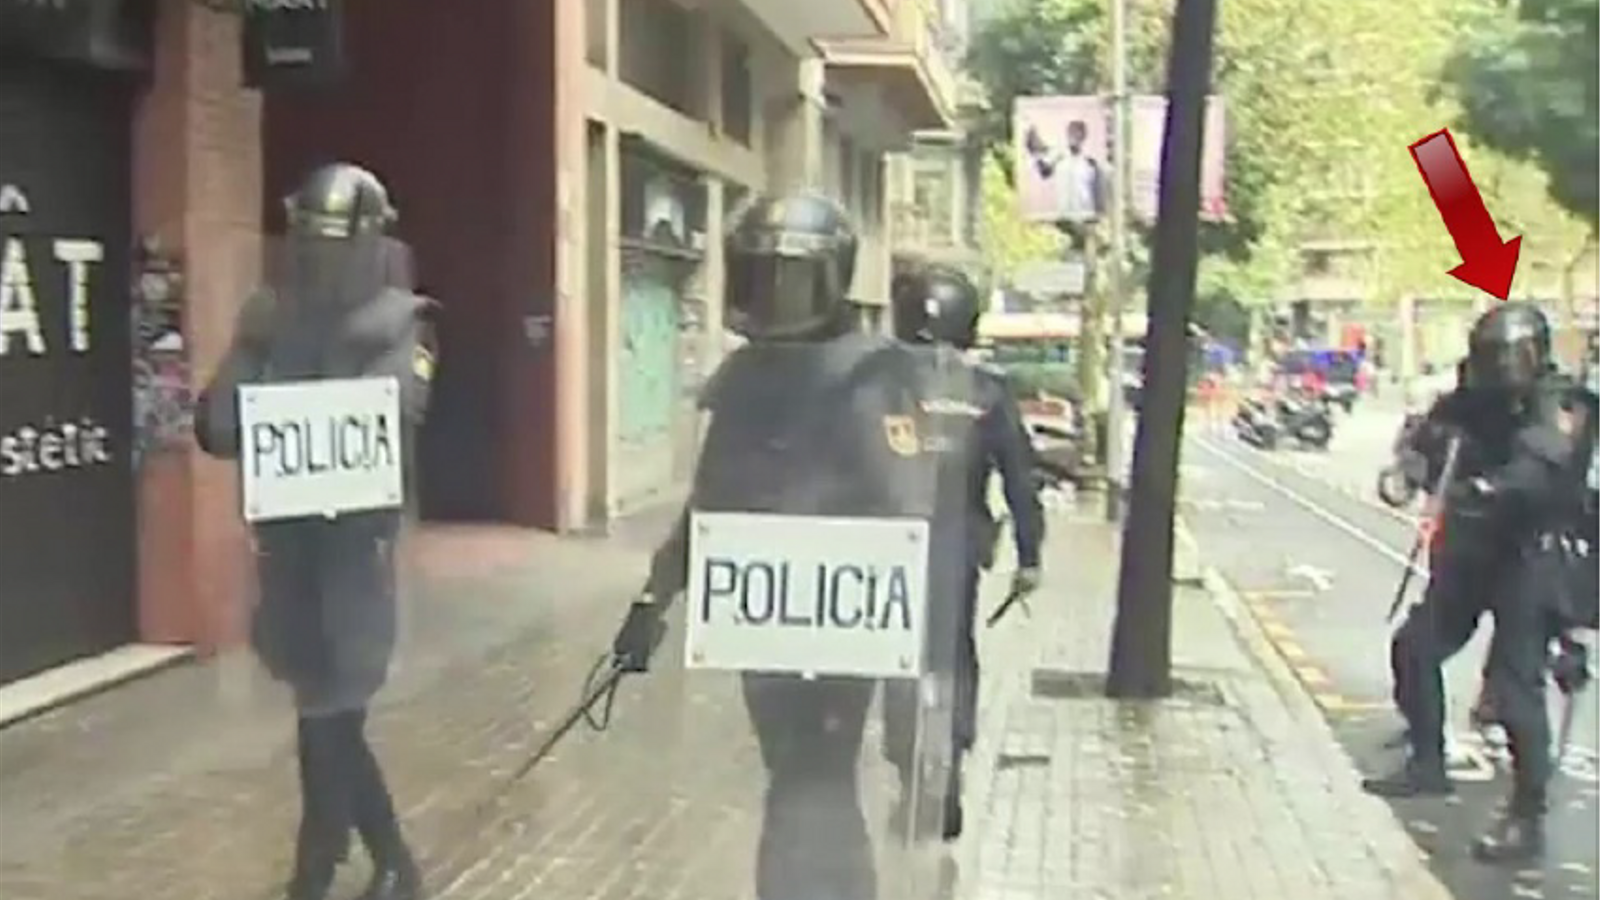 ID'd officer who fired rubber bullet blinding Catalan